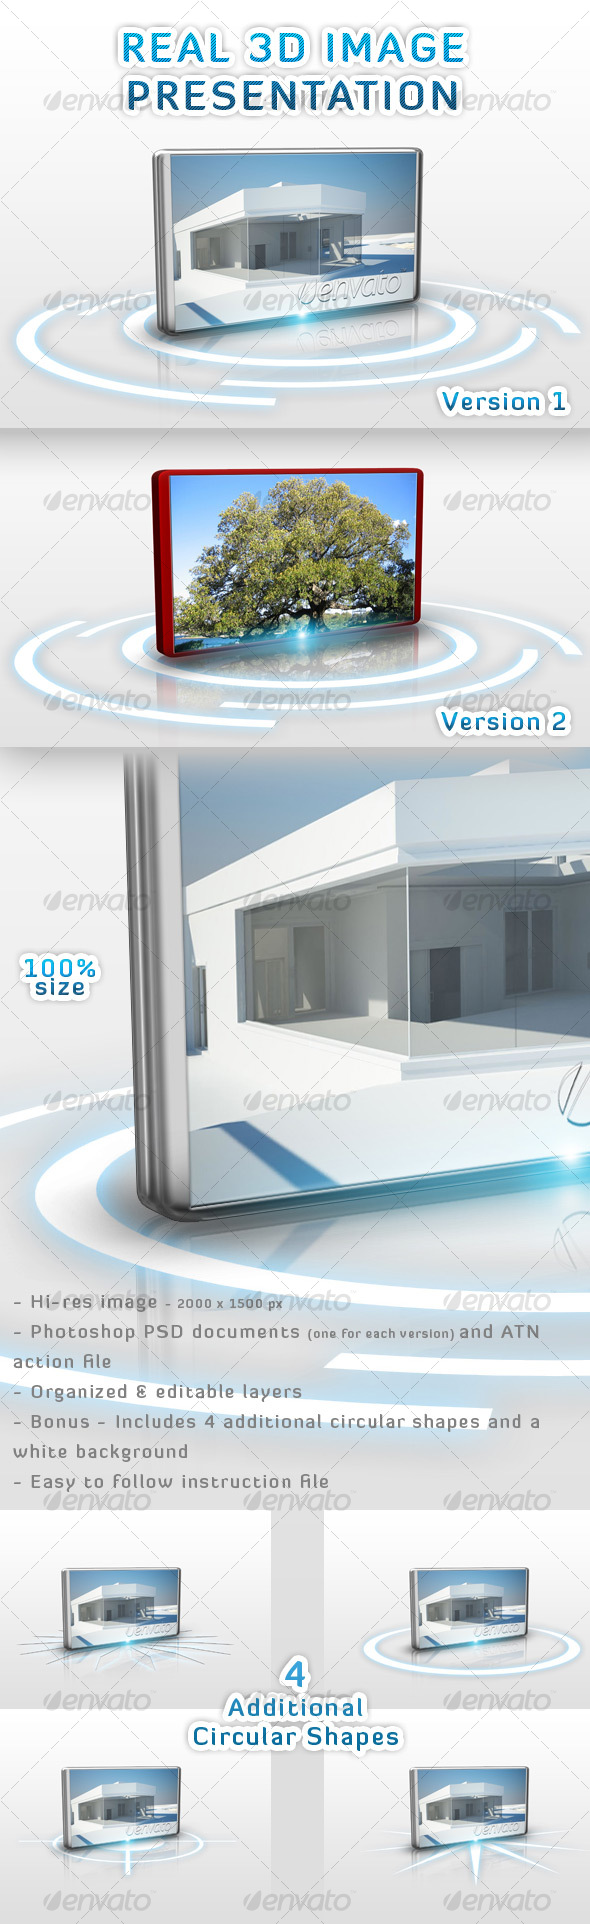 Real 3D Image Presentation - Tech / Futuristic Photo Templates